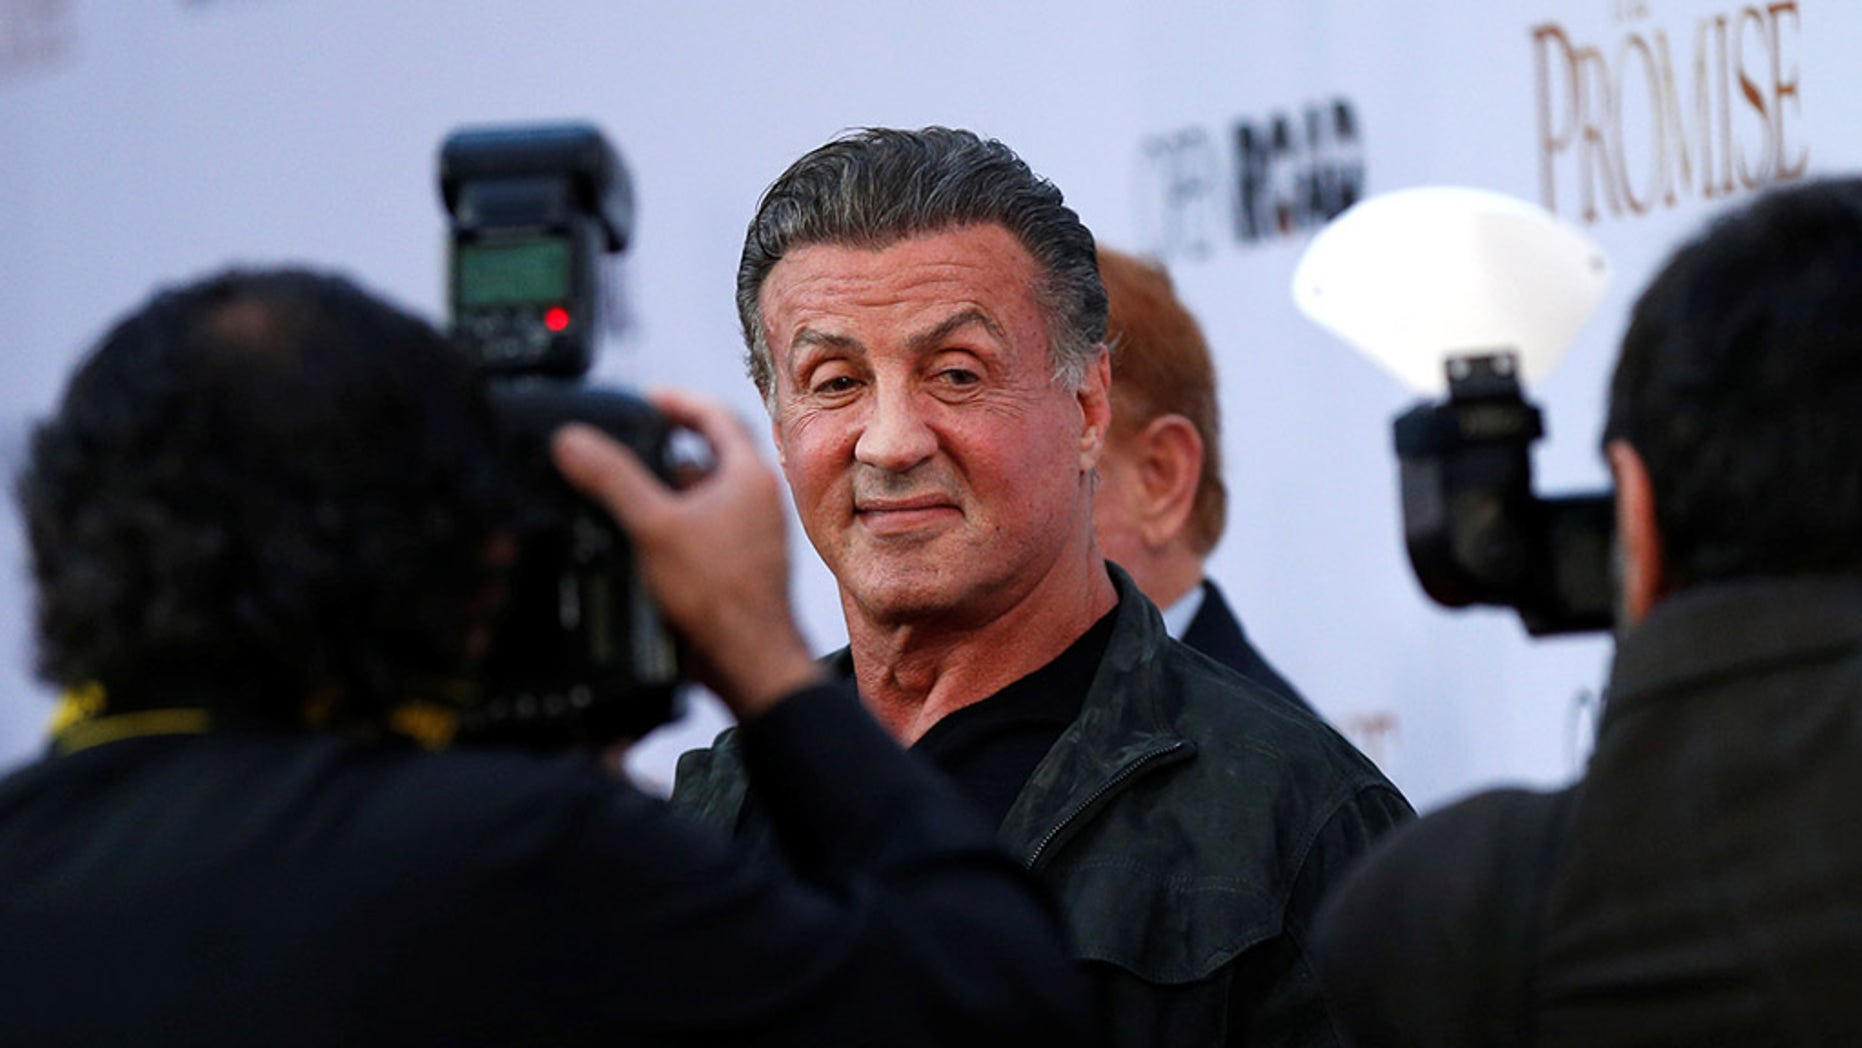 Sylvester Stallone spoke Wednesday of the end of his iconic role in the film Rocky Balboa.